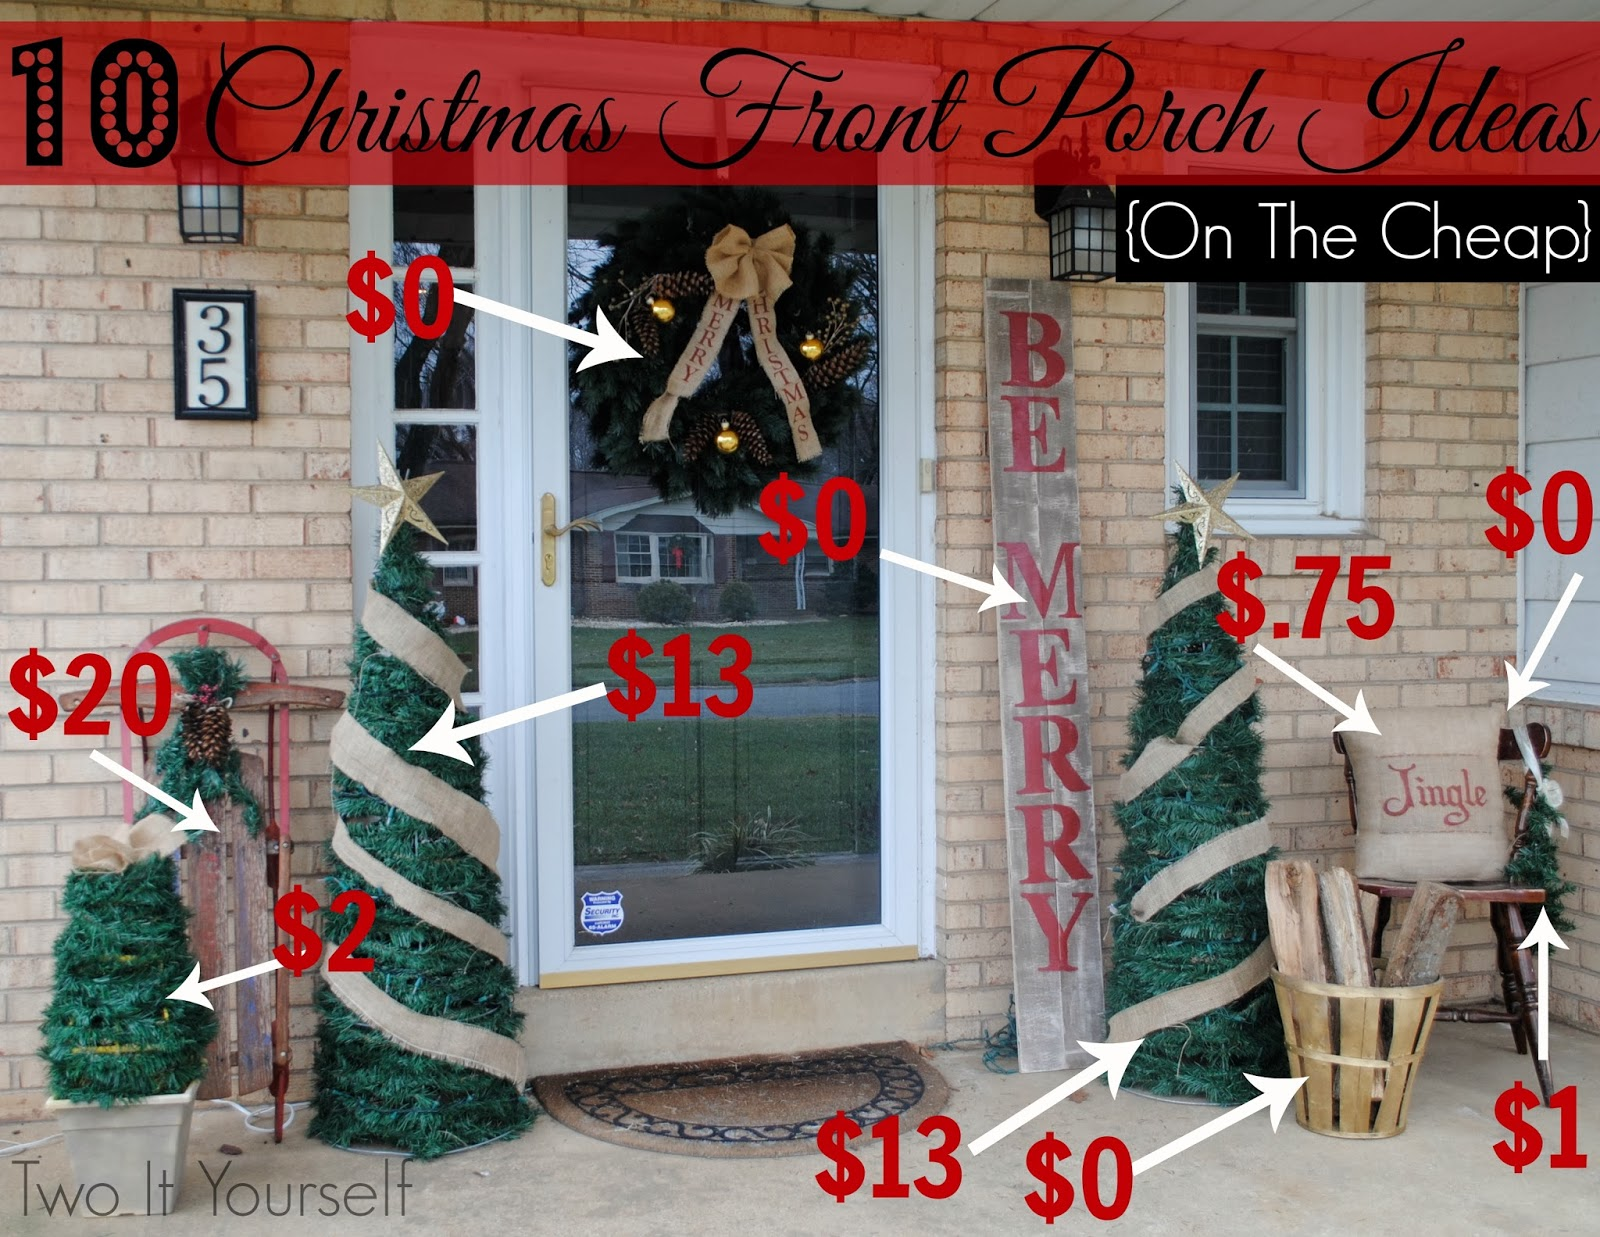 two it yourself 10 christmas front porch ideas on the cheap - Front Porch Christmas Decorations Ideas